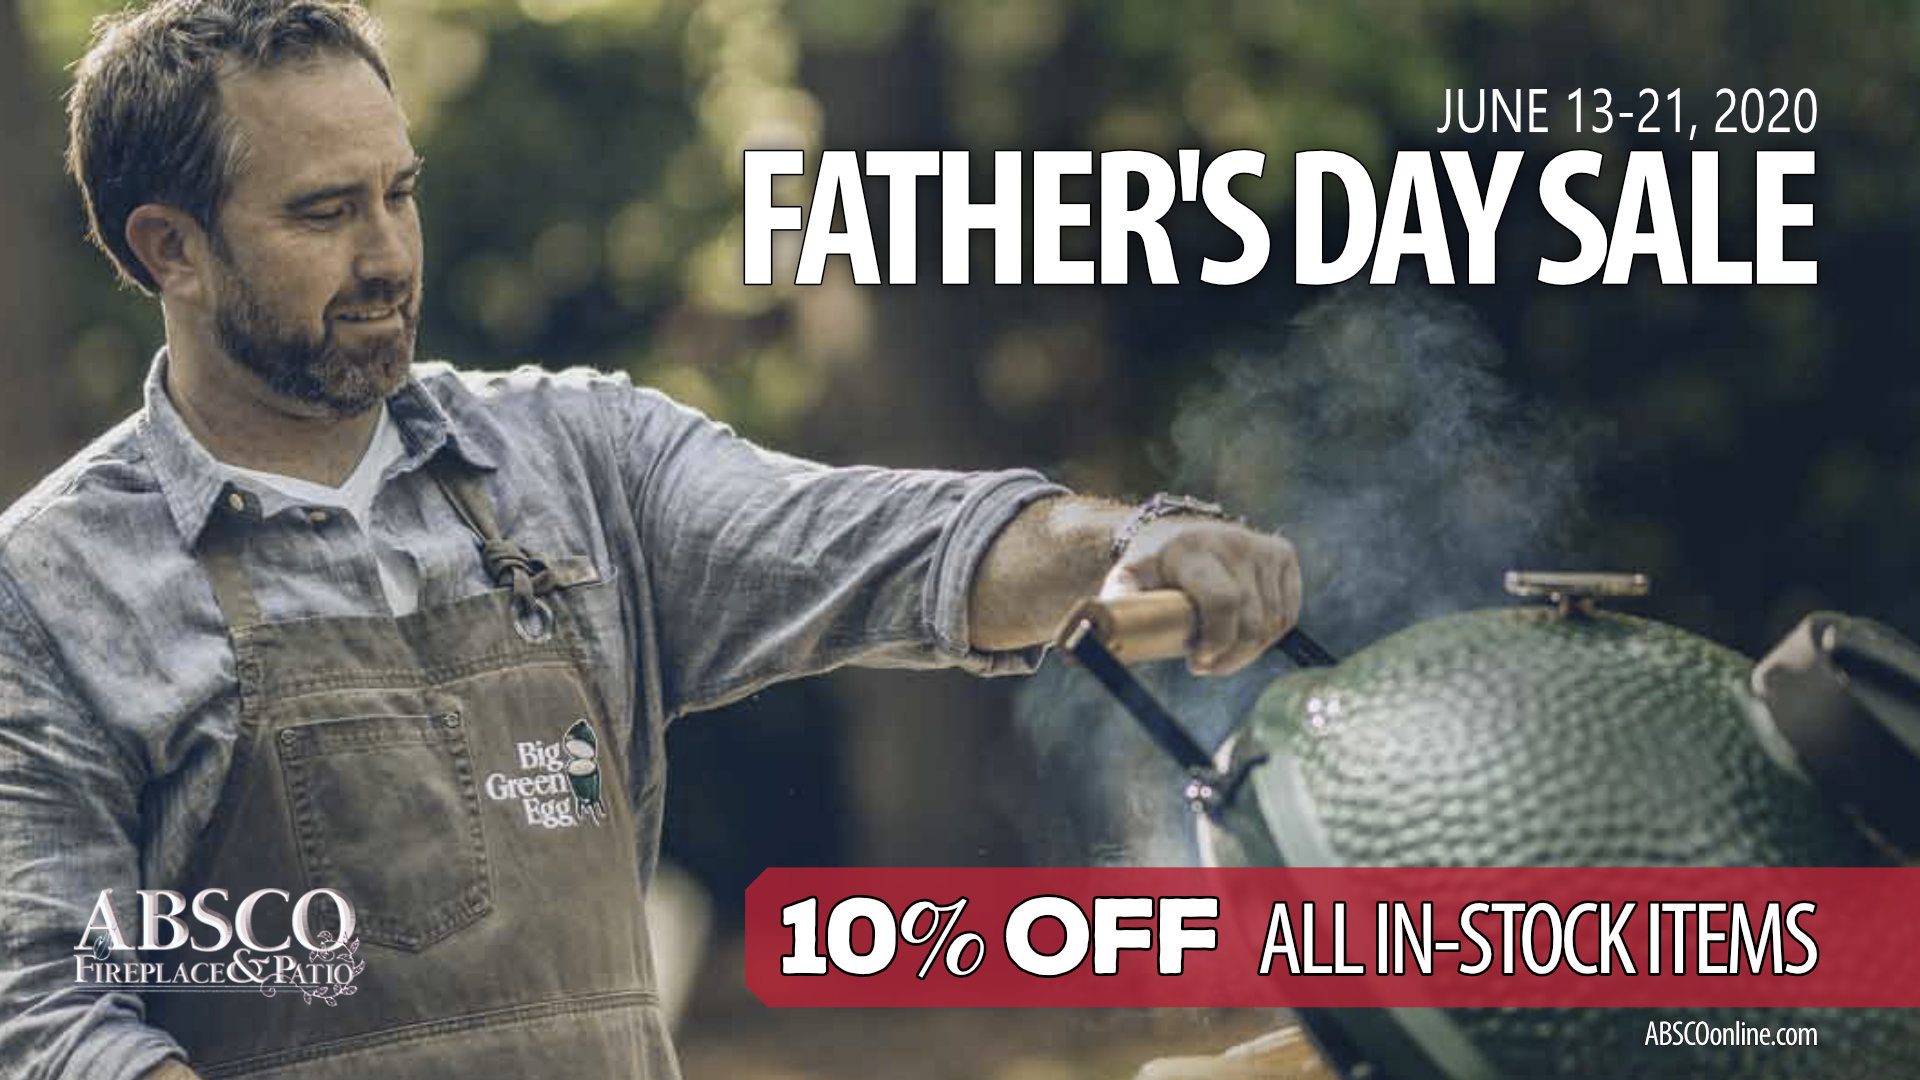 Fathers Day Sale - BBQ Grilling - ABSCO Fireplace & Patio Alabama